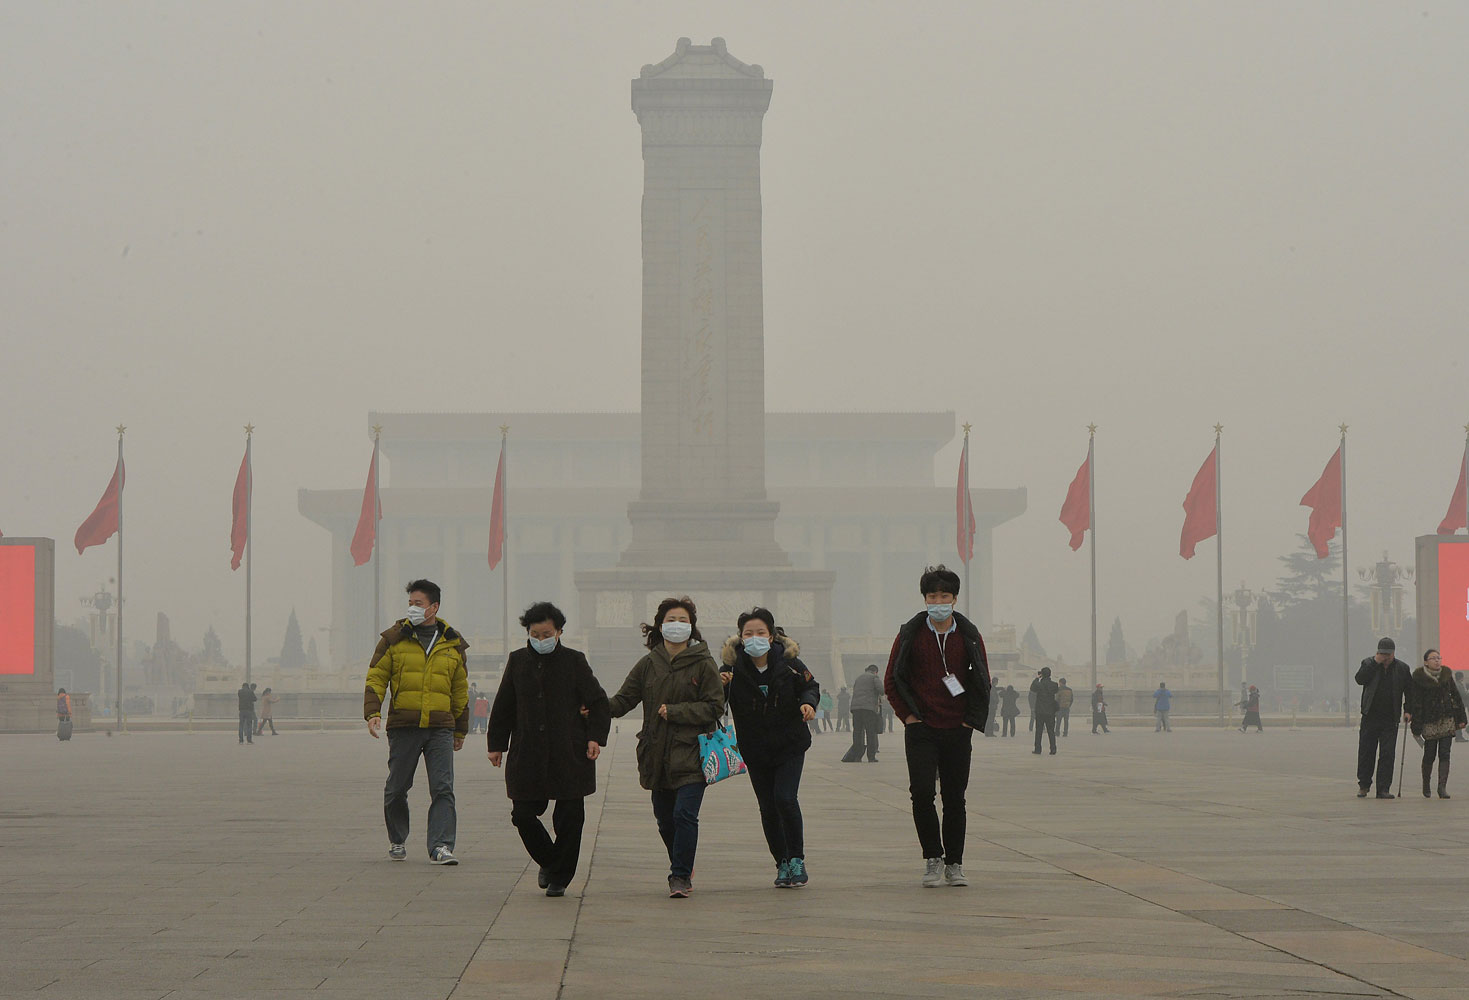 Chinese tourists wearing face masks visit Tiananmen Square as heavy air pollution continues to shroud Beijing on Feb. 26, 2014.